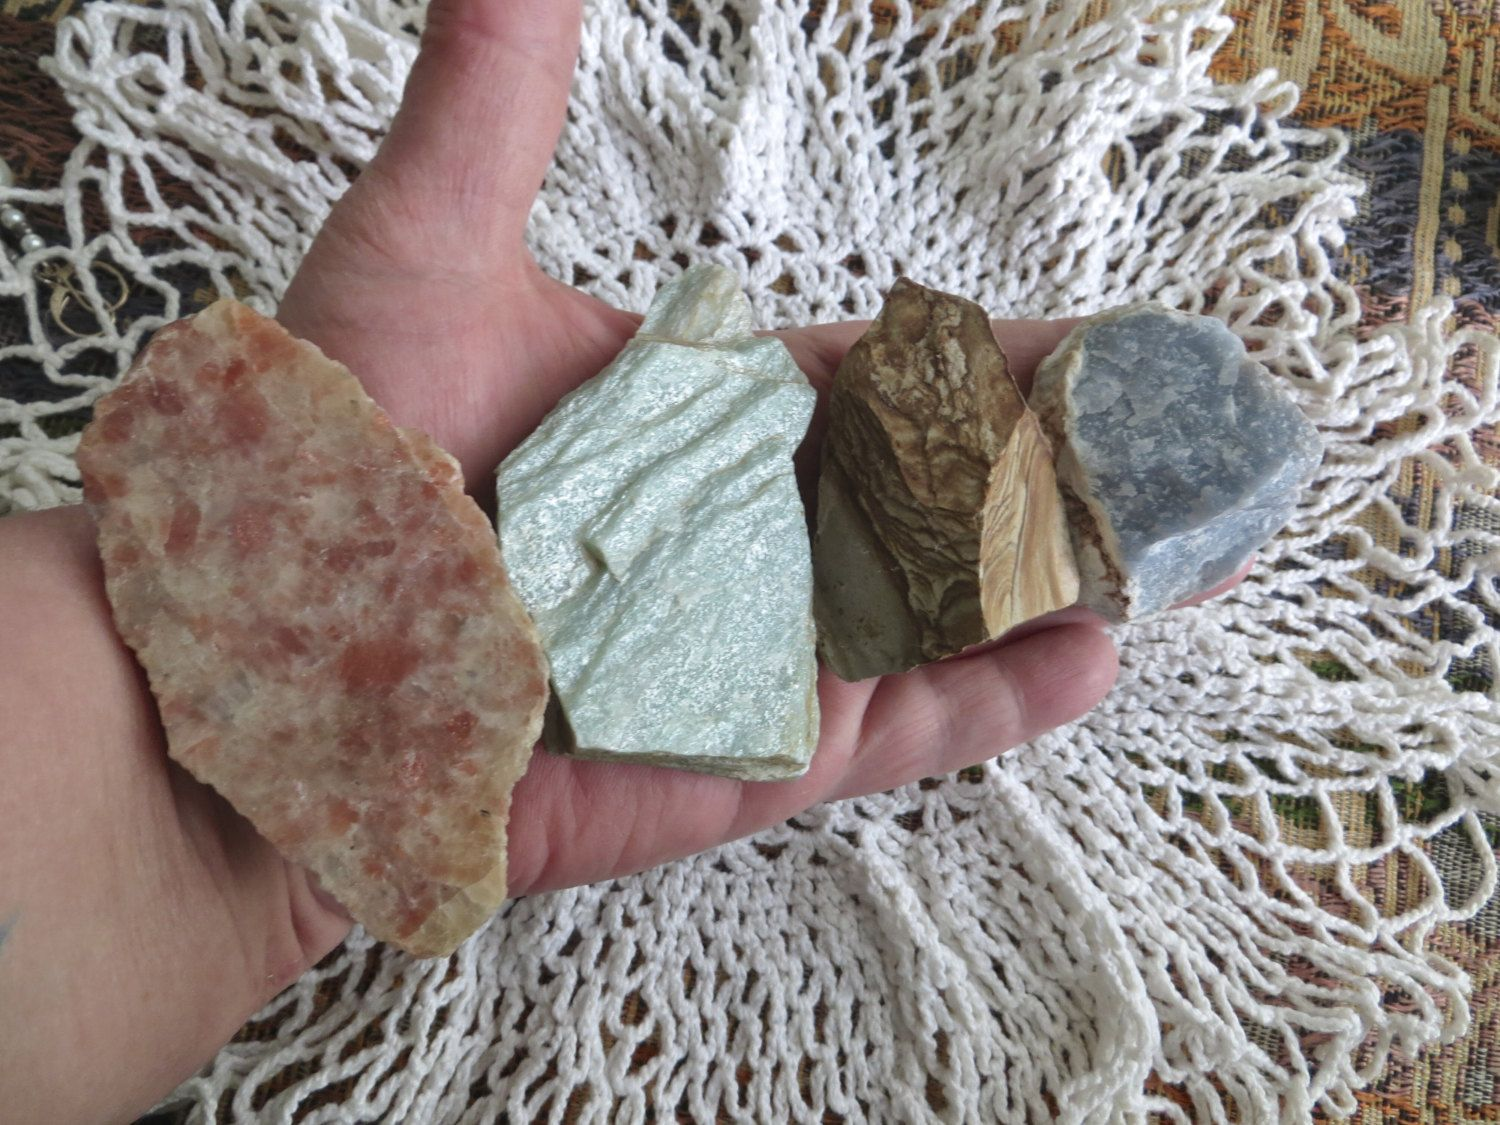 lot of XX large rough stones - angelite, india sunstone, picture jasper, fuchsite (green muscovite) by homesteadhippie on Etsy